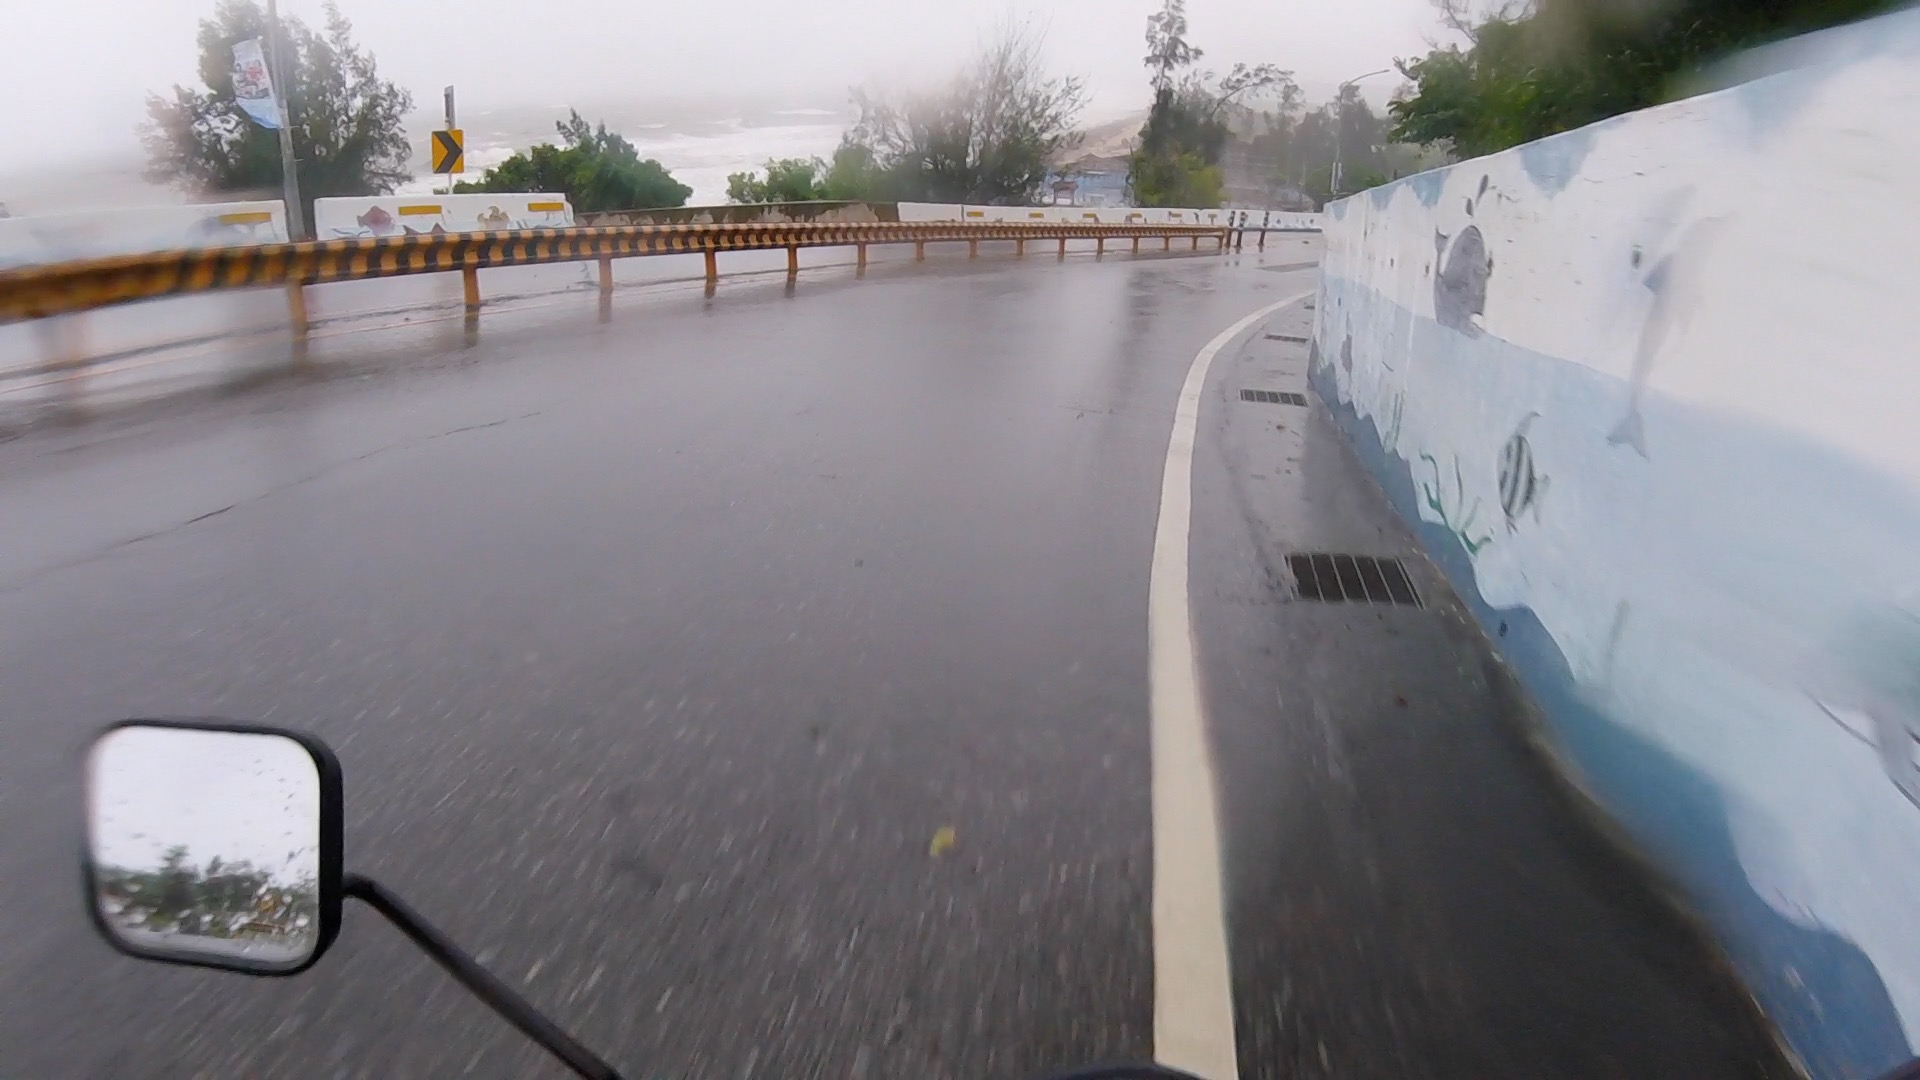 I Rode A Motorcycle In A Typhoon Today post image